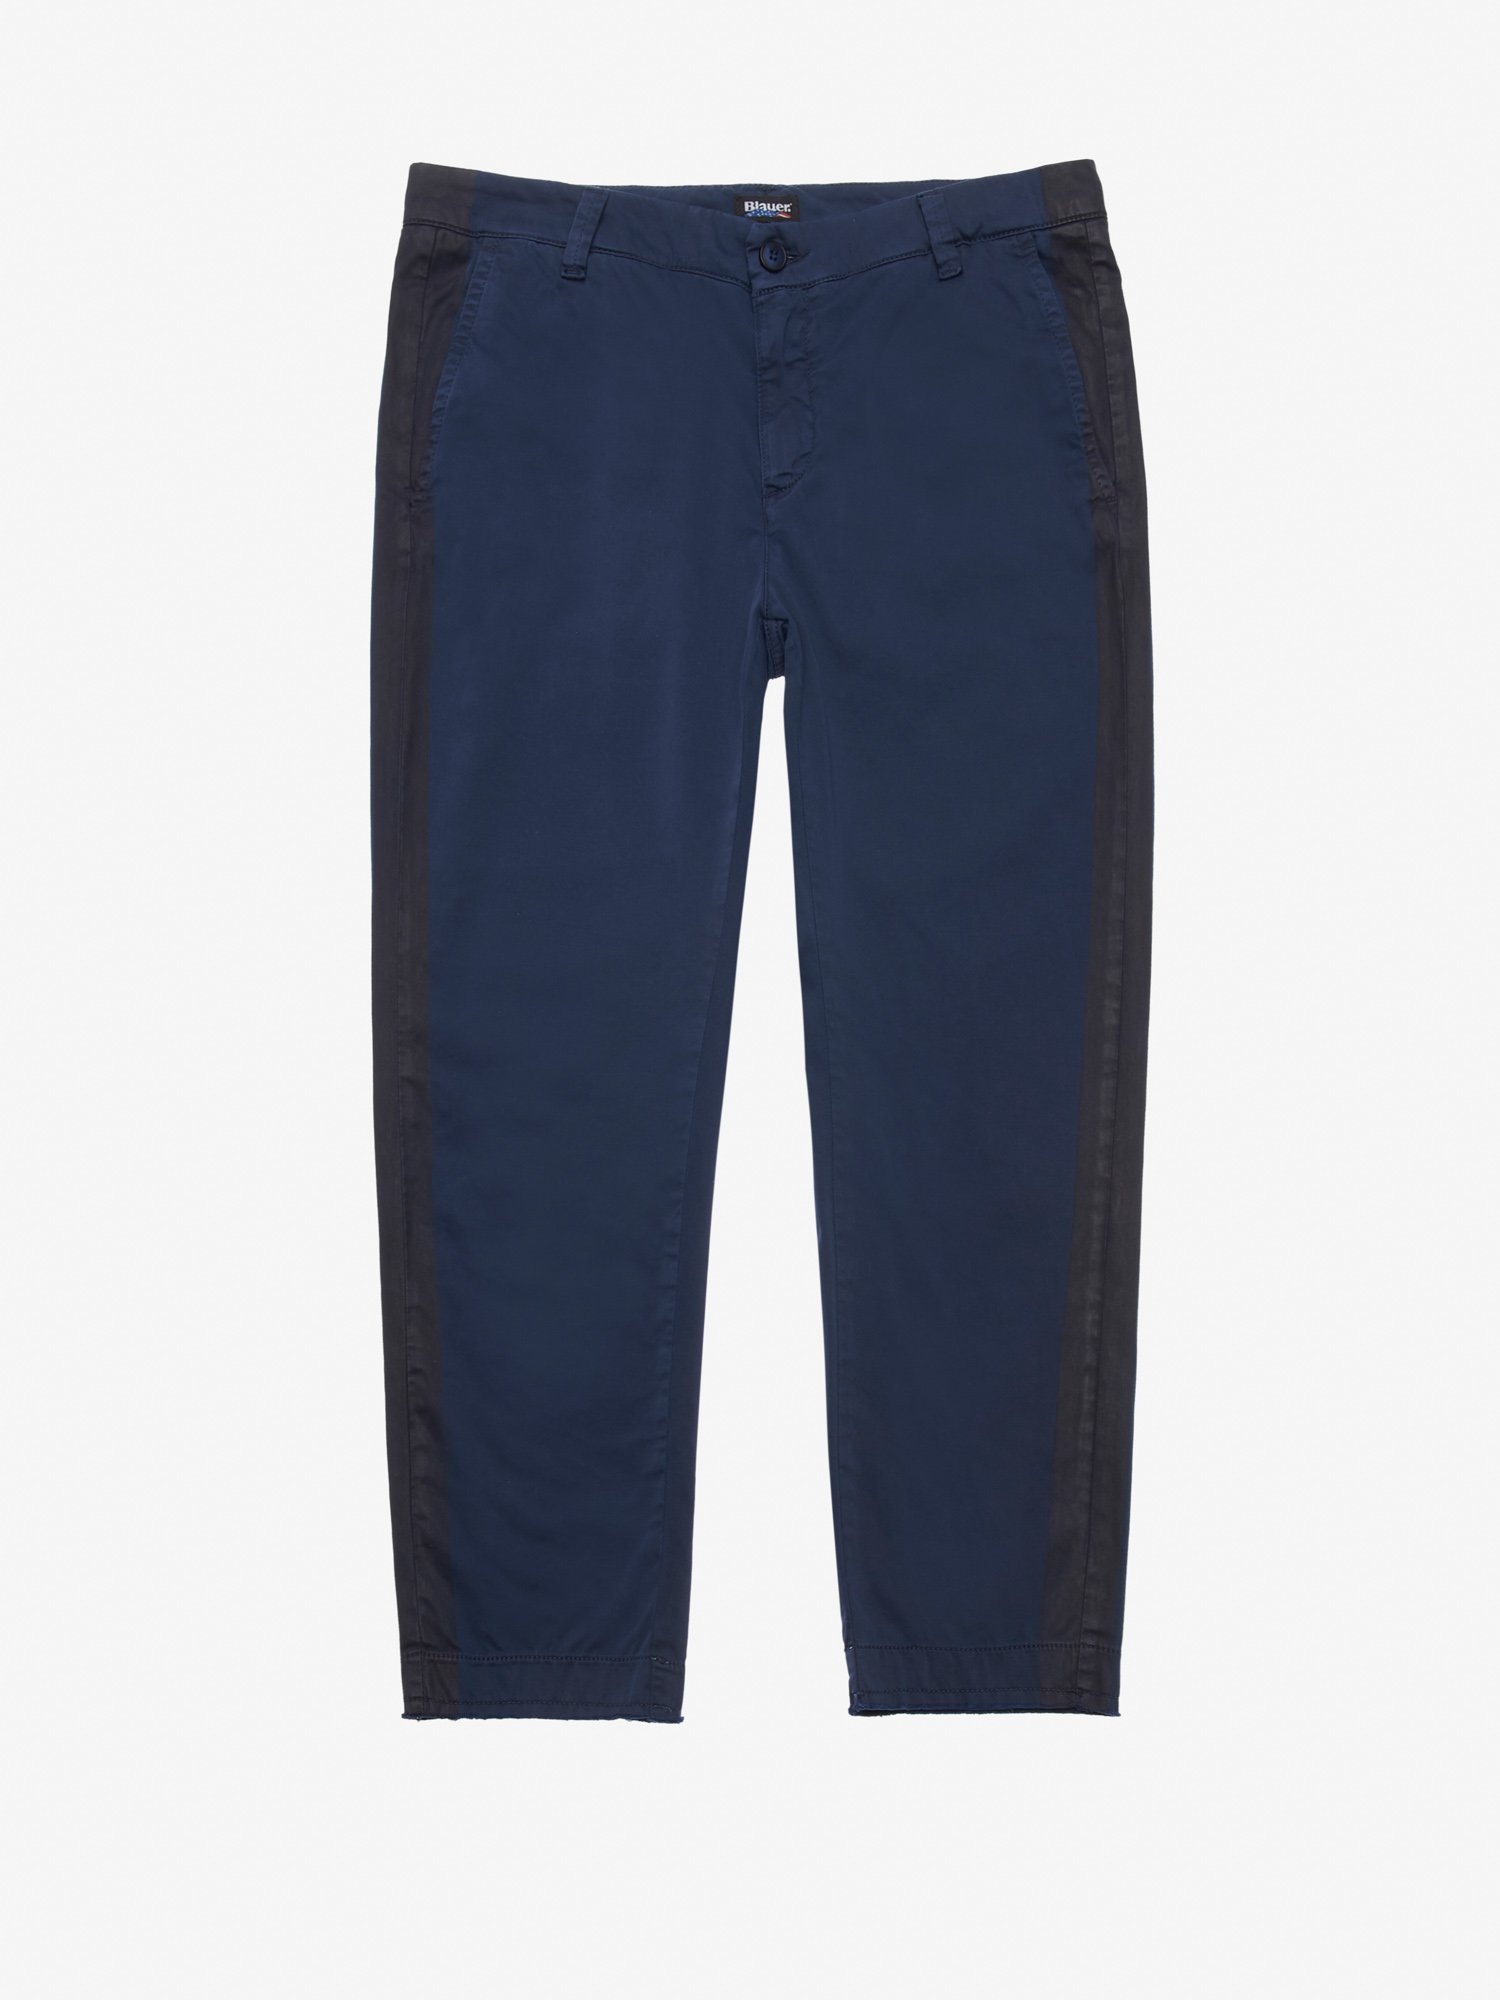 Blauer - SATIN STRETCH TROUSERS - Blue Ink - Blauer